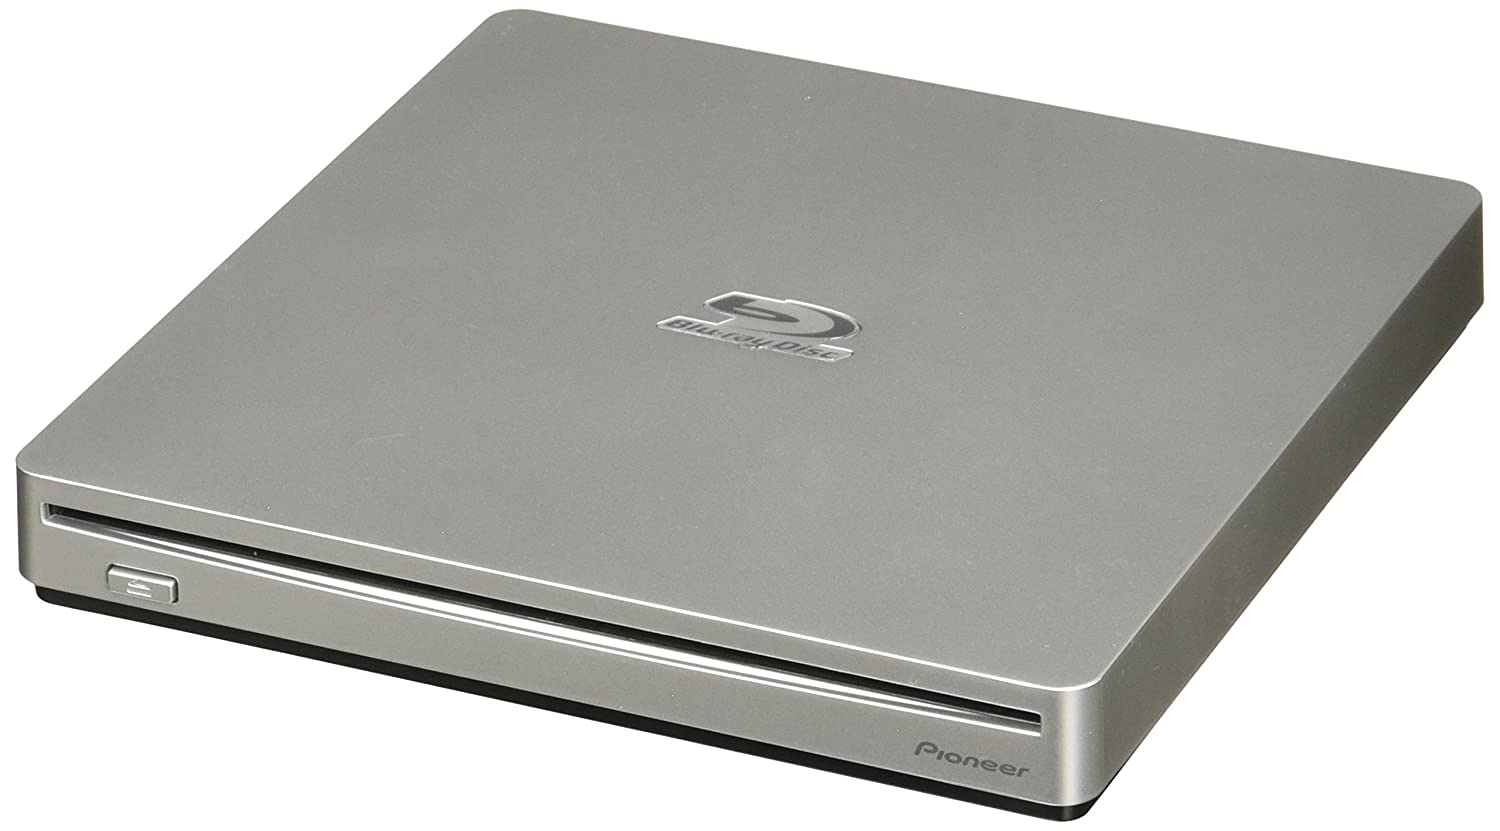 Pioneer BDR-XS06 Slim Portable USB 3.0 BD/DVD/CD Blu-ray Writer